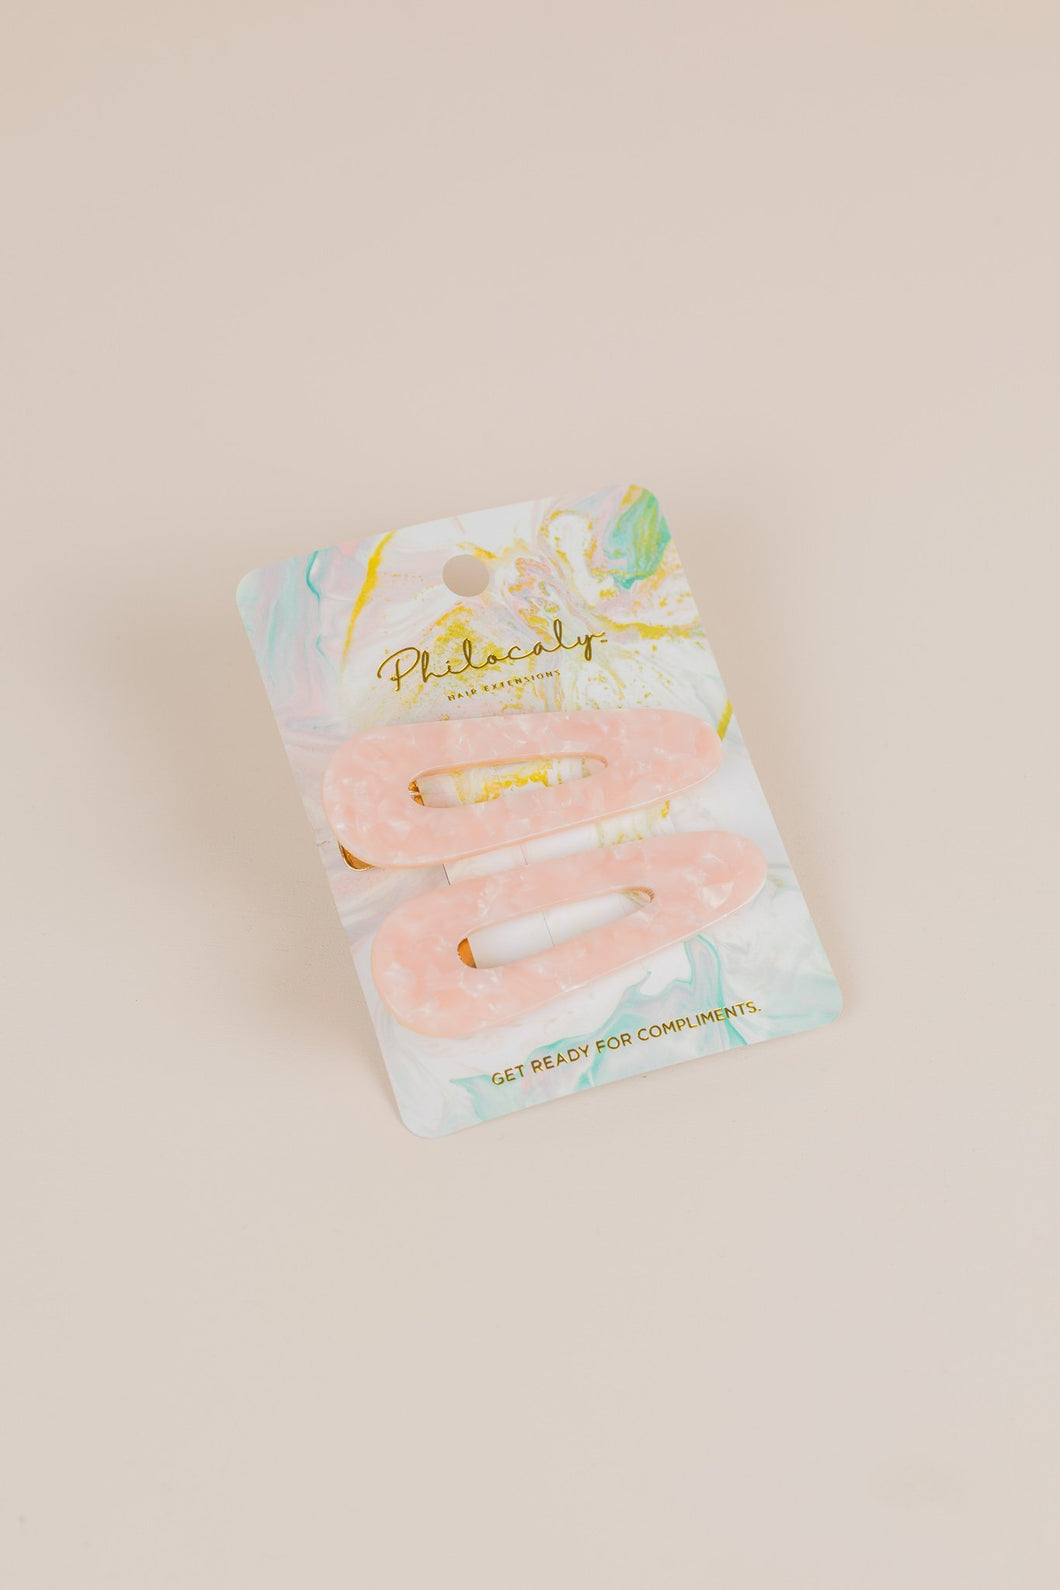 Philocaly 90's Baby Clip Set (Blush Quartz)